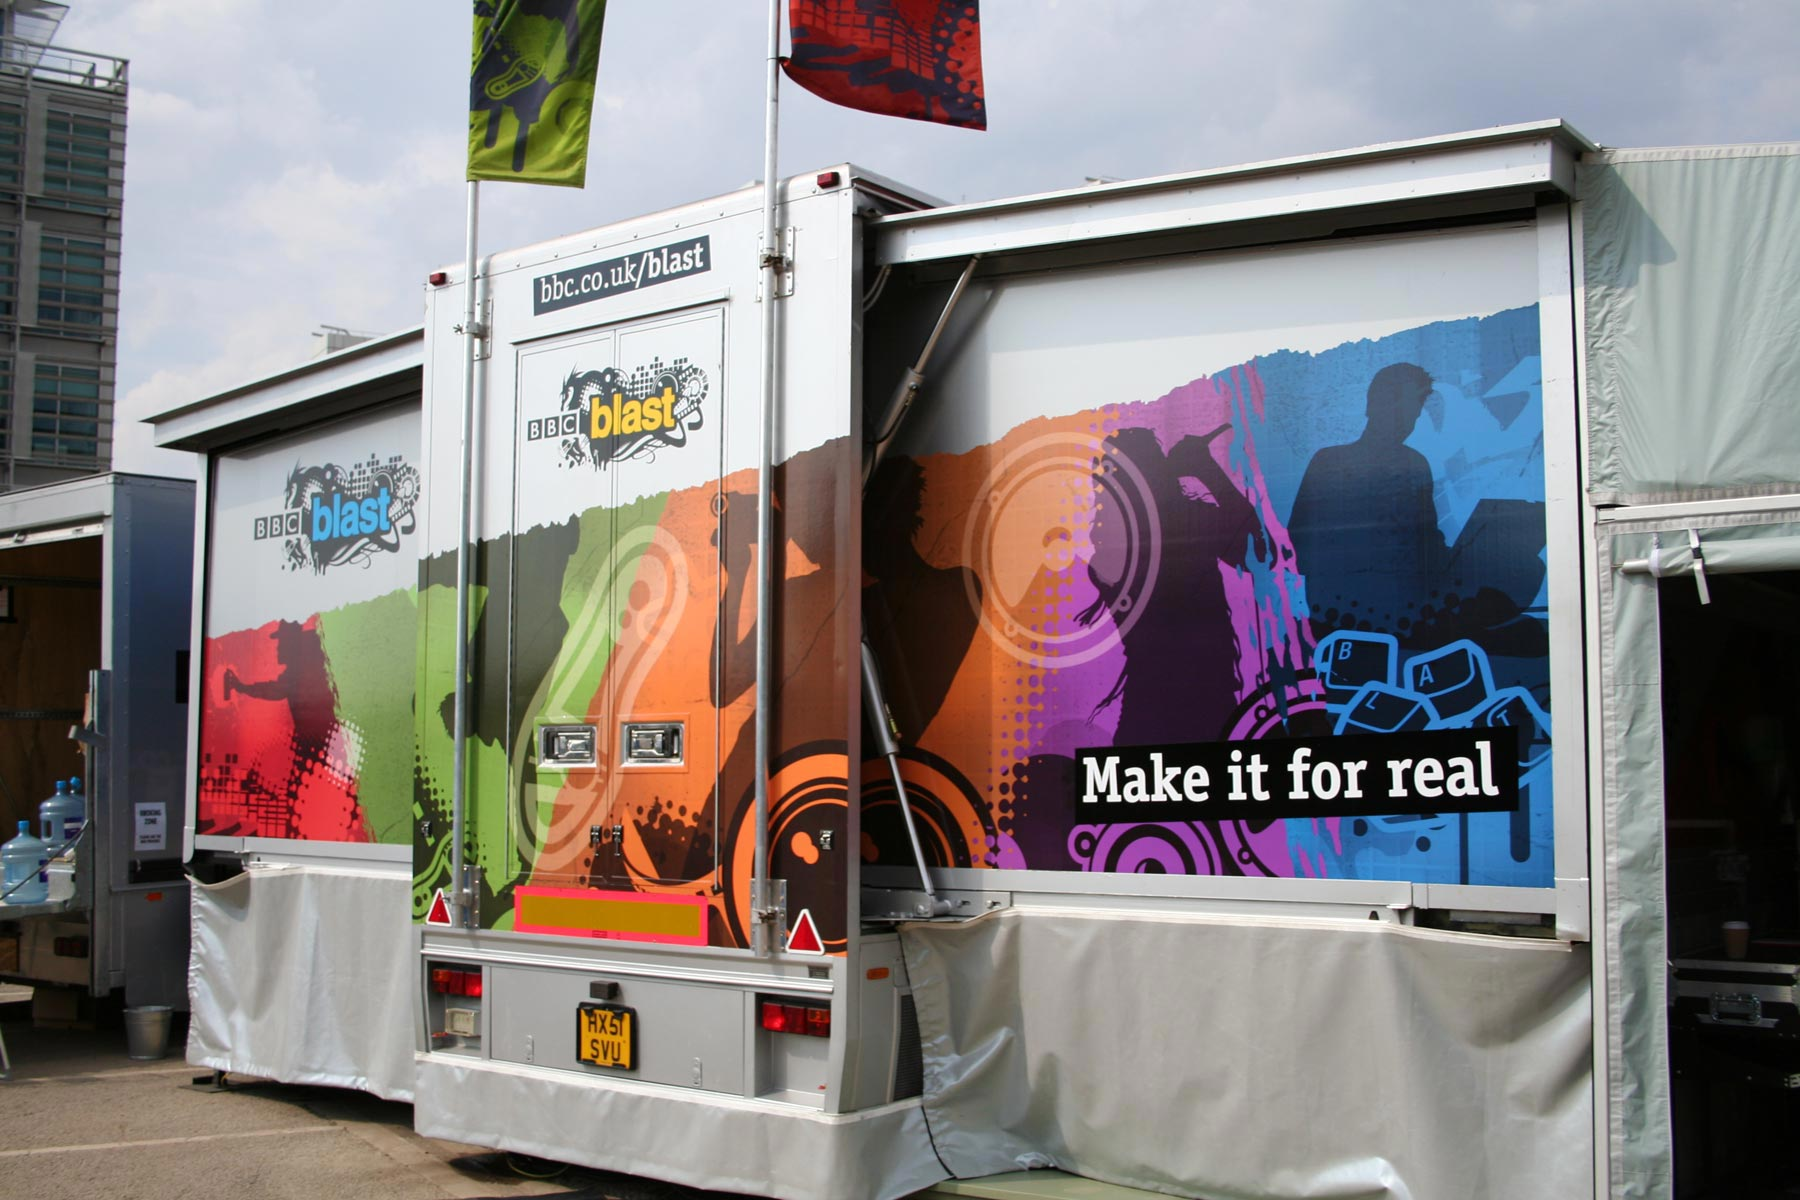 A powerful application for the brand was a set of articulated trucks which toured the UK for a period of eight months, designed to bring creativity to the far reaches of the community.